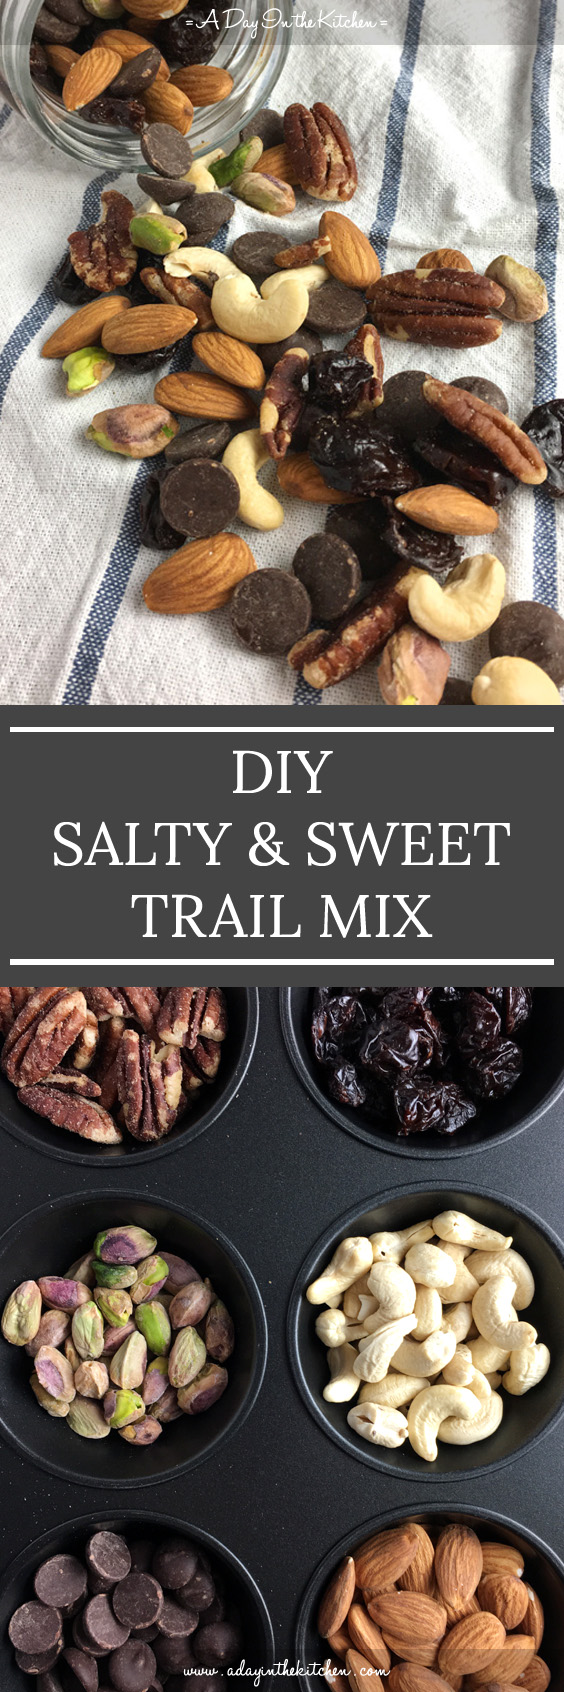 Stop buying big bags of trail mix with ingredients you don't like, and try DIY Salty & Sweet Trail Mix with only your favorites! #trailmix #nuts #chocolatechips #driedfruit